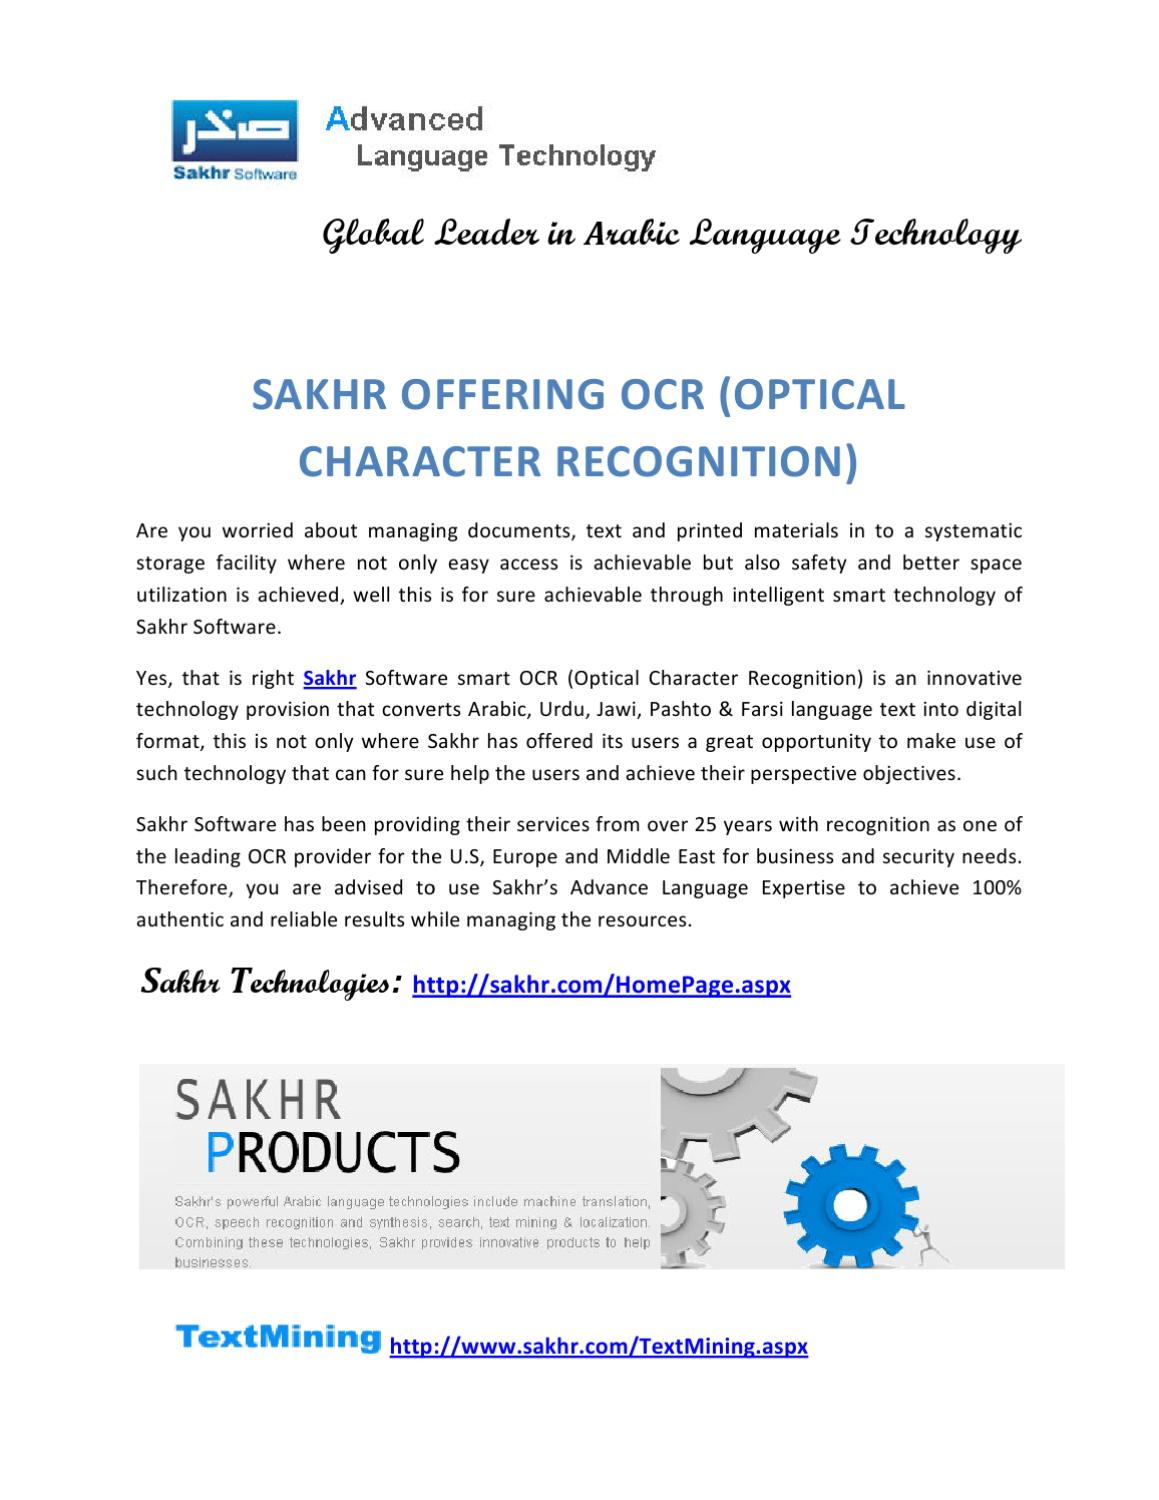 Sakhr Offering OCR (Optical Character Recognition) by Alisha